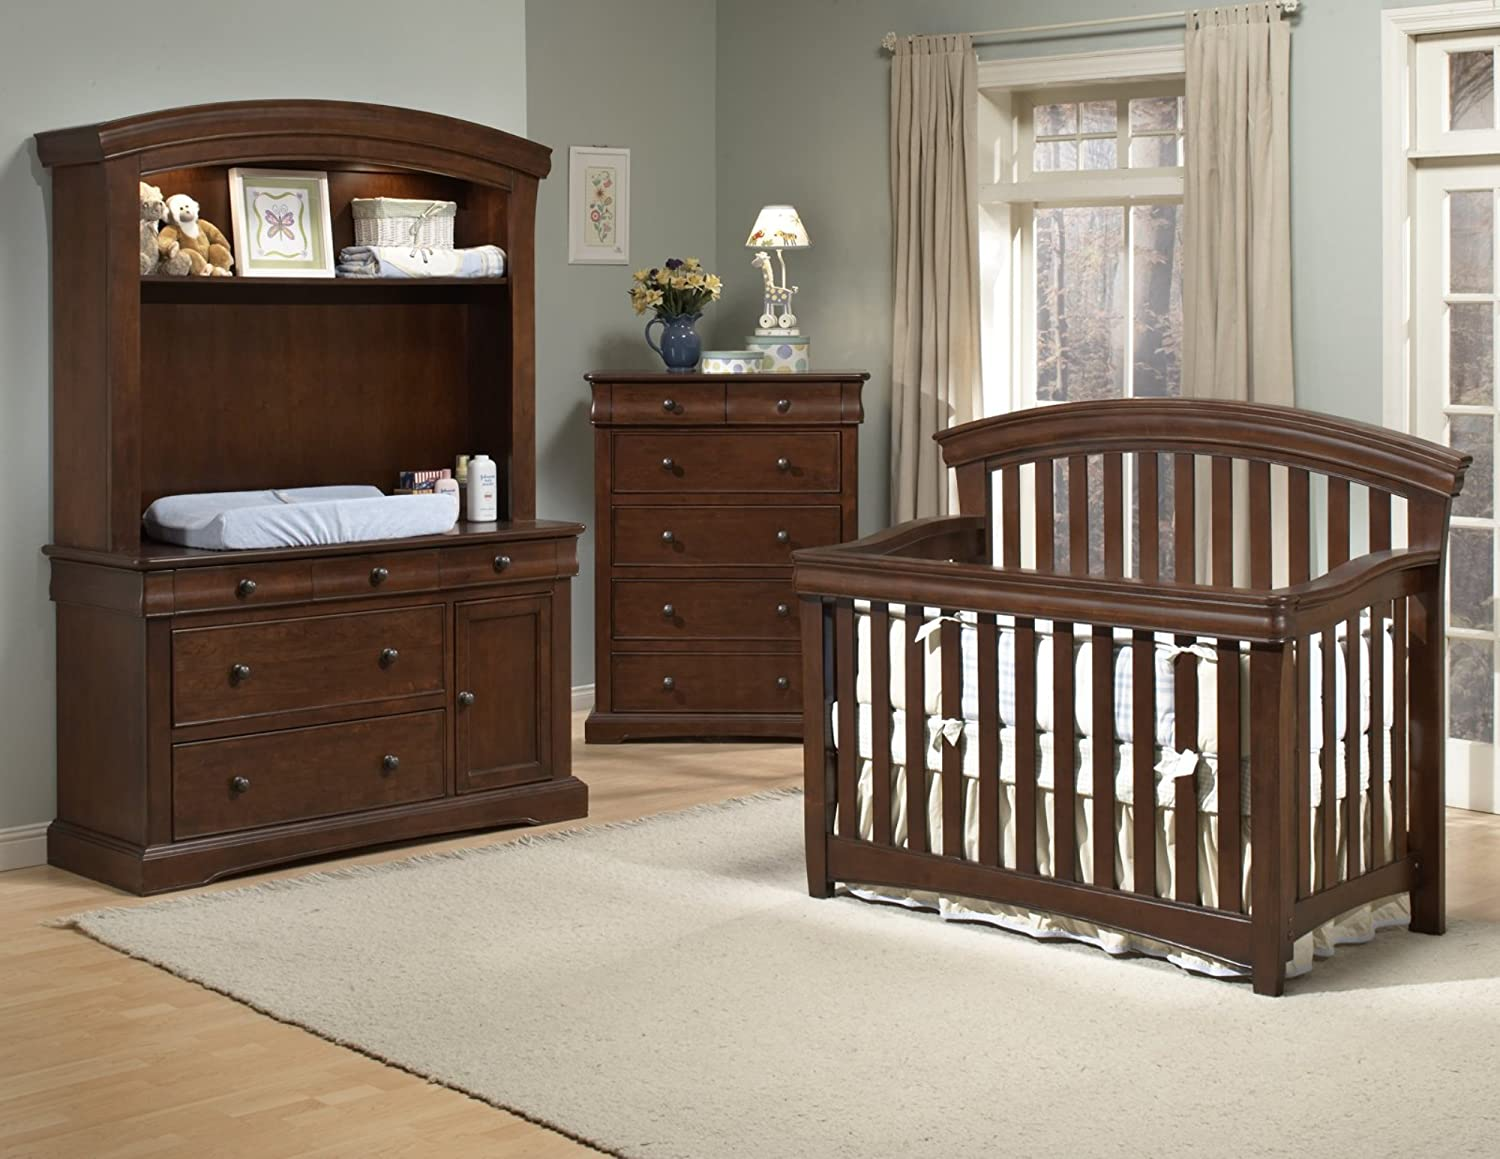 Lovely Amazon.com : Westwood Design Stratton Convertible Crib With Guard Rail,  Chocolate Mist : Baby